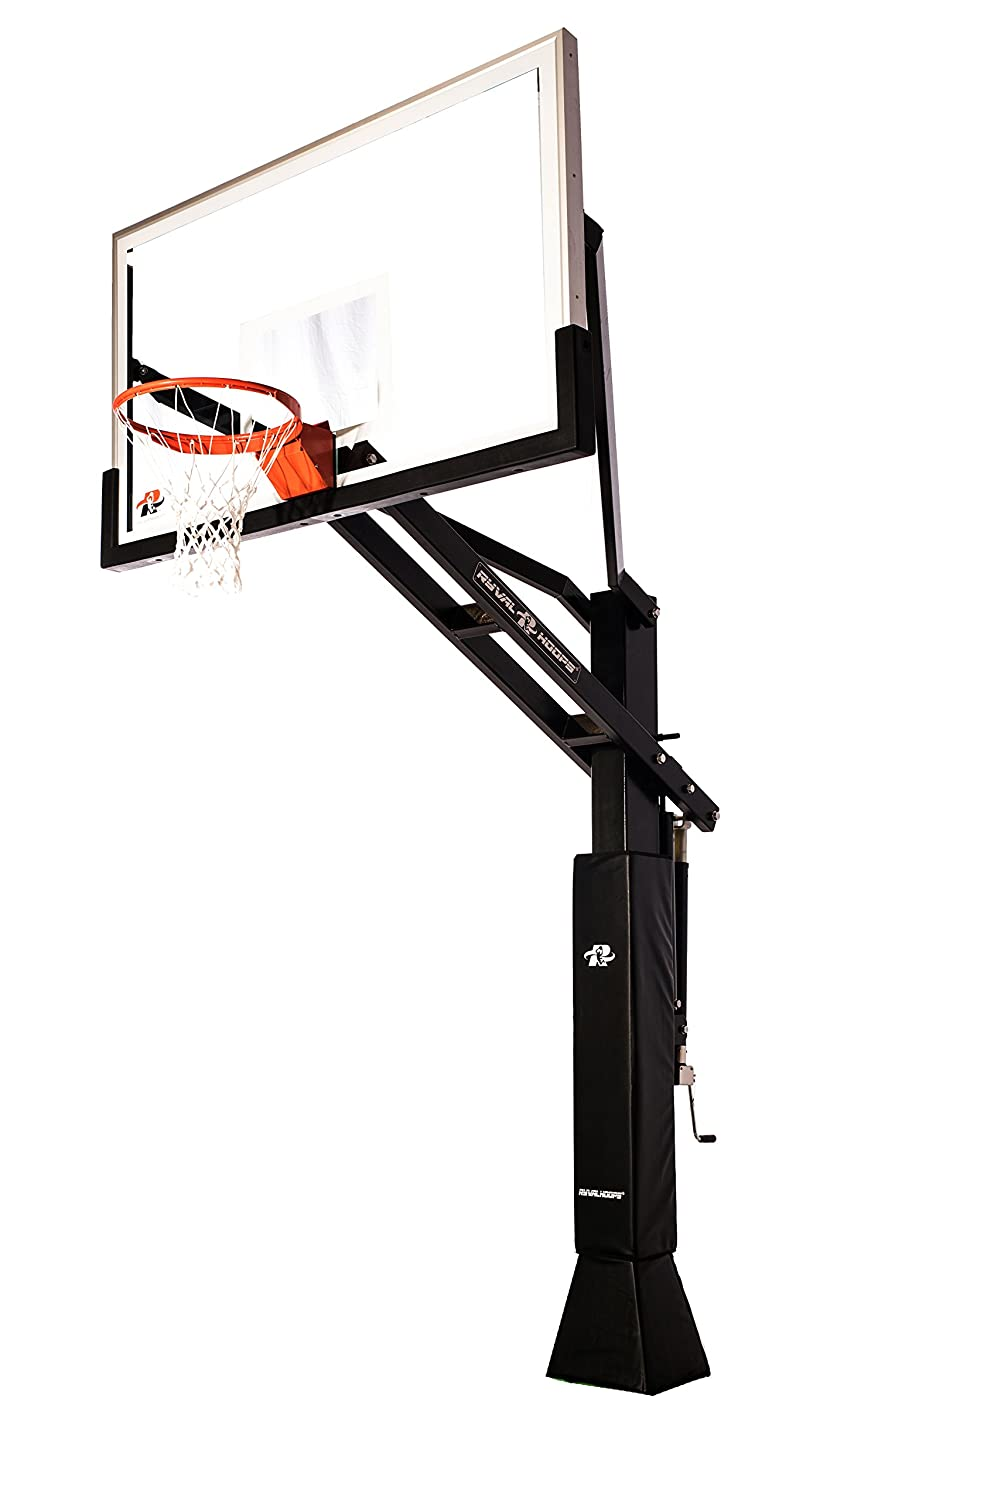 Image result for C872 Basketball Hoop